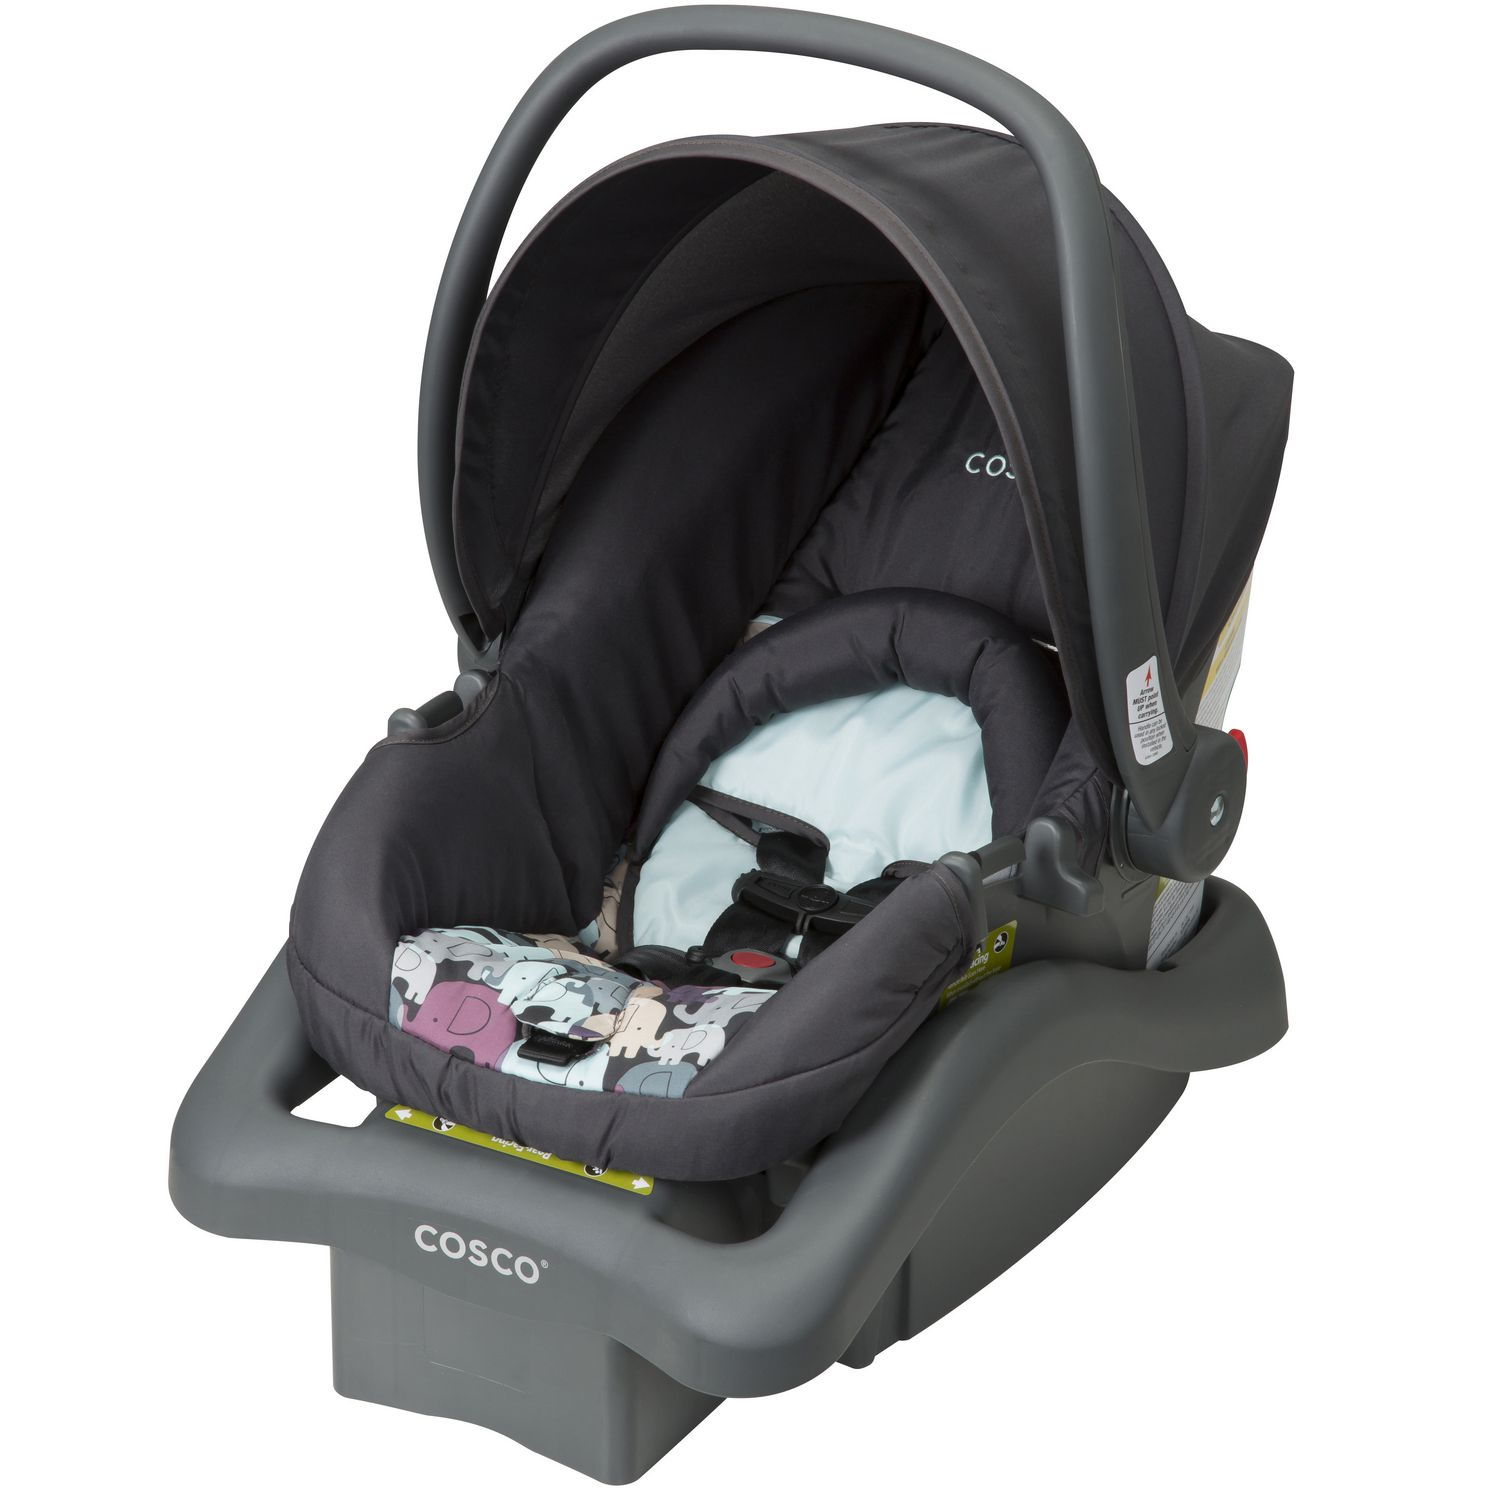 best infant car seat graco or chicco velcromag. Black Bedroom Furniture Sets. Home Design Ideas